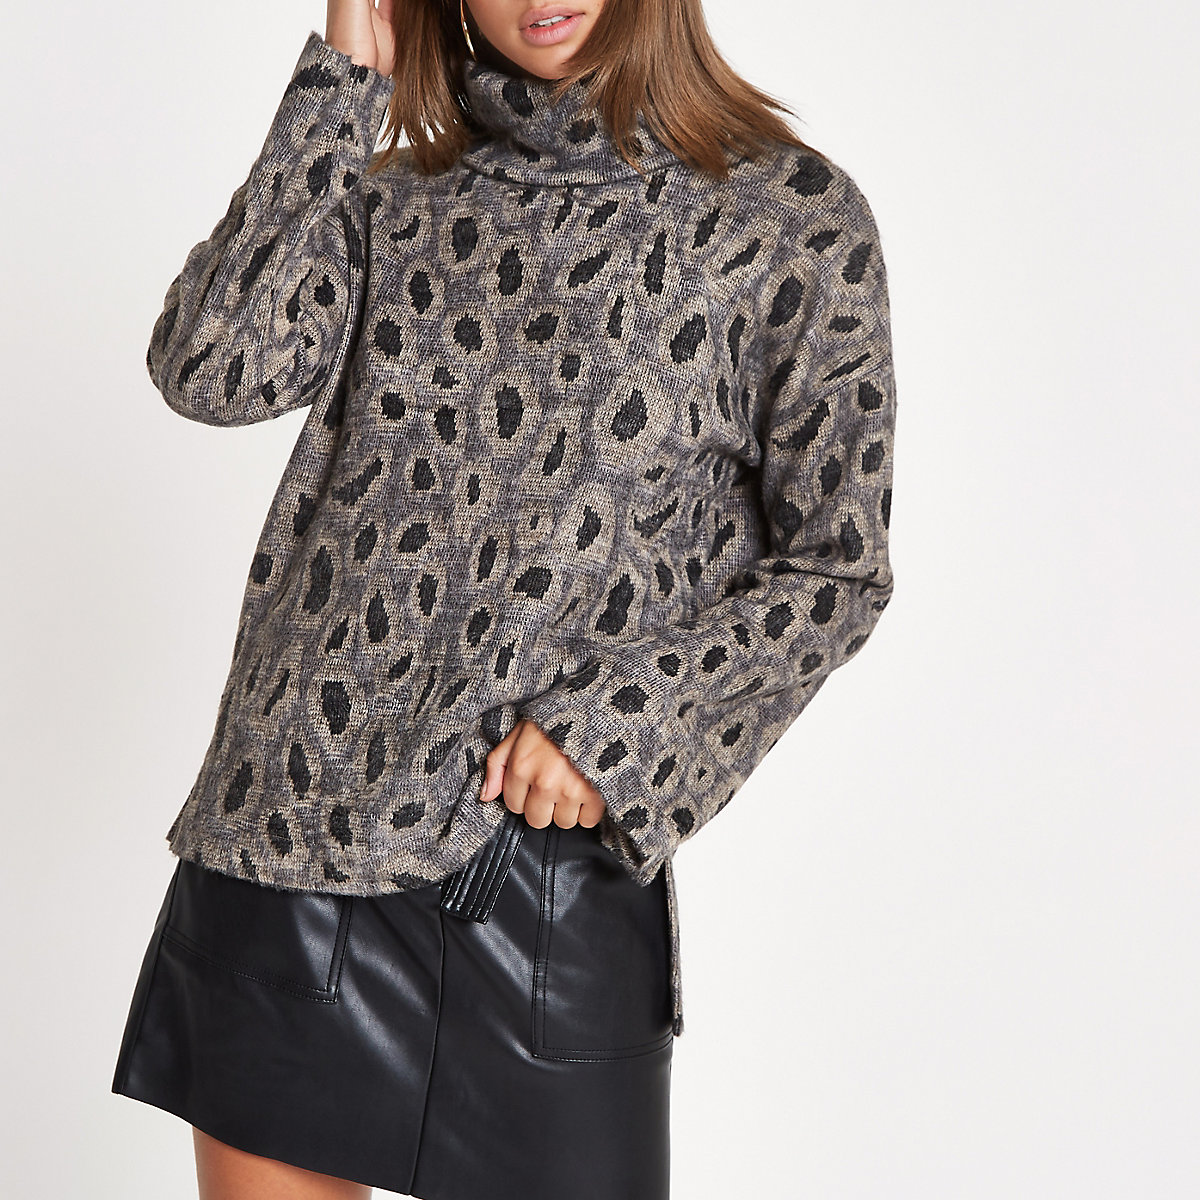 Brown brushed leopard print top